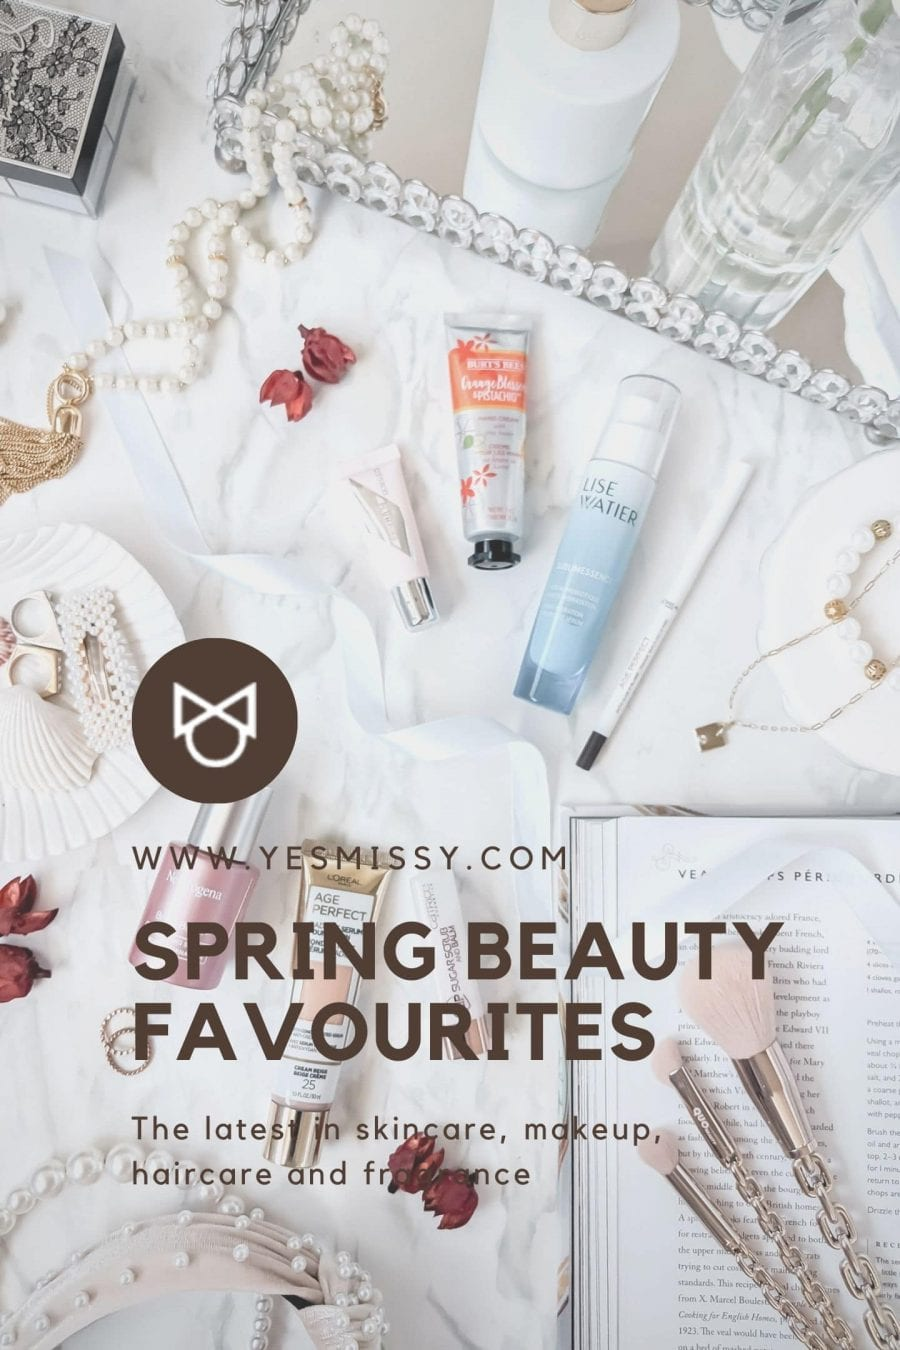 Spring Beauty Favourites Roundup - Drugstore skincare, makeup and haircare